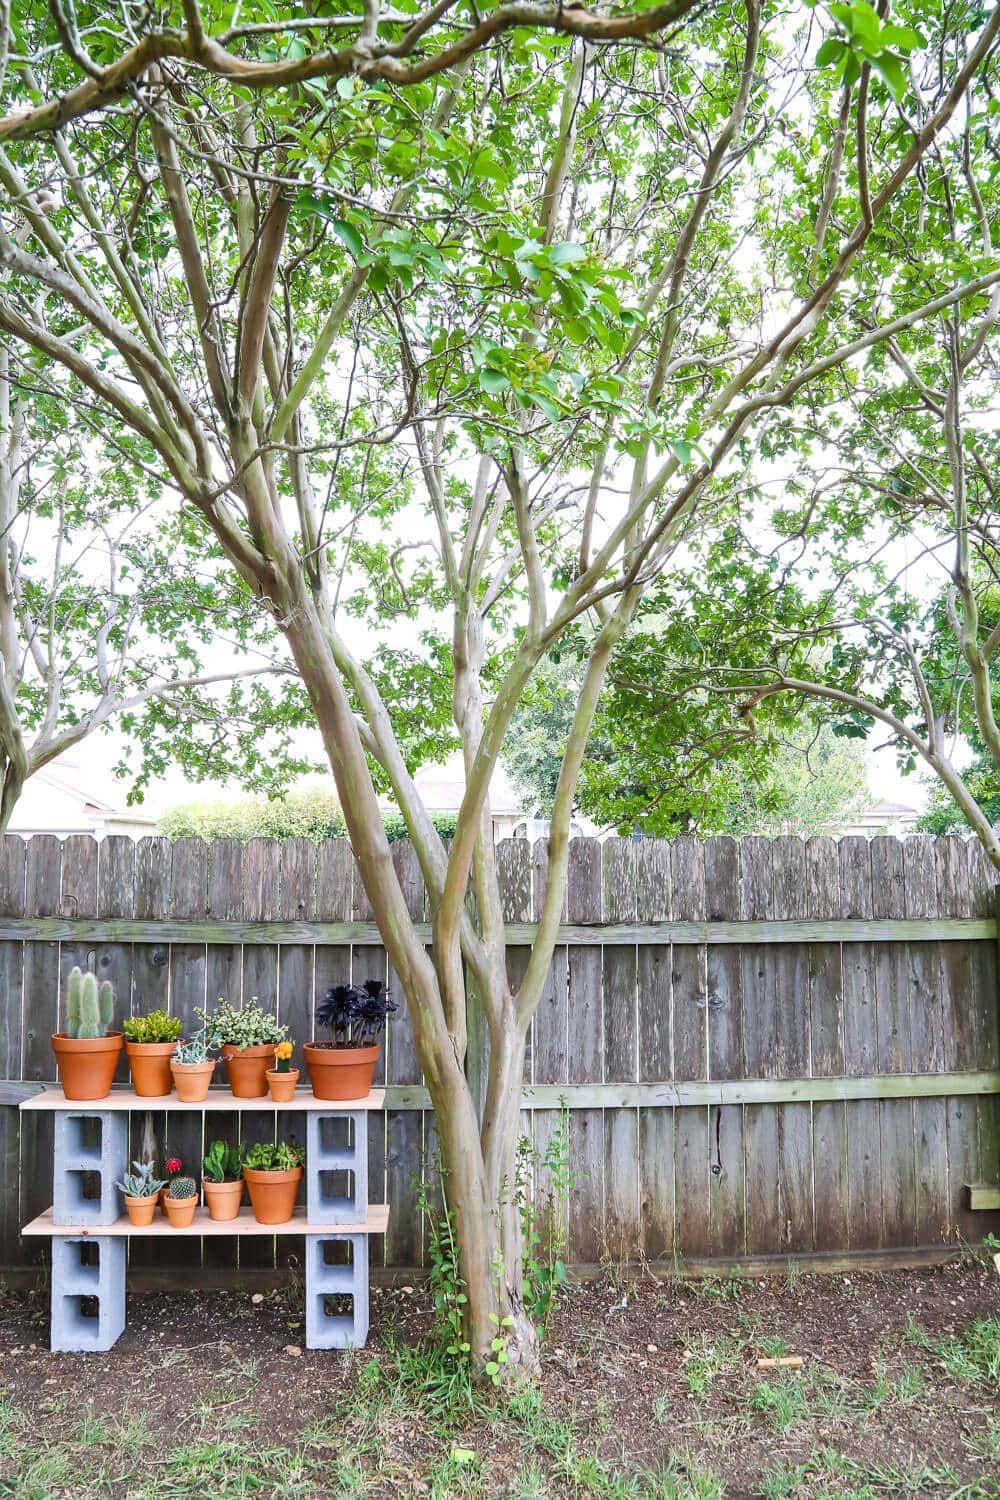 cinder block shelves with plants next to a fence